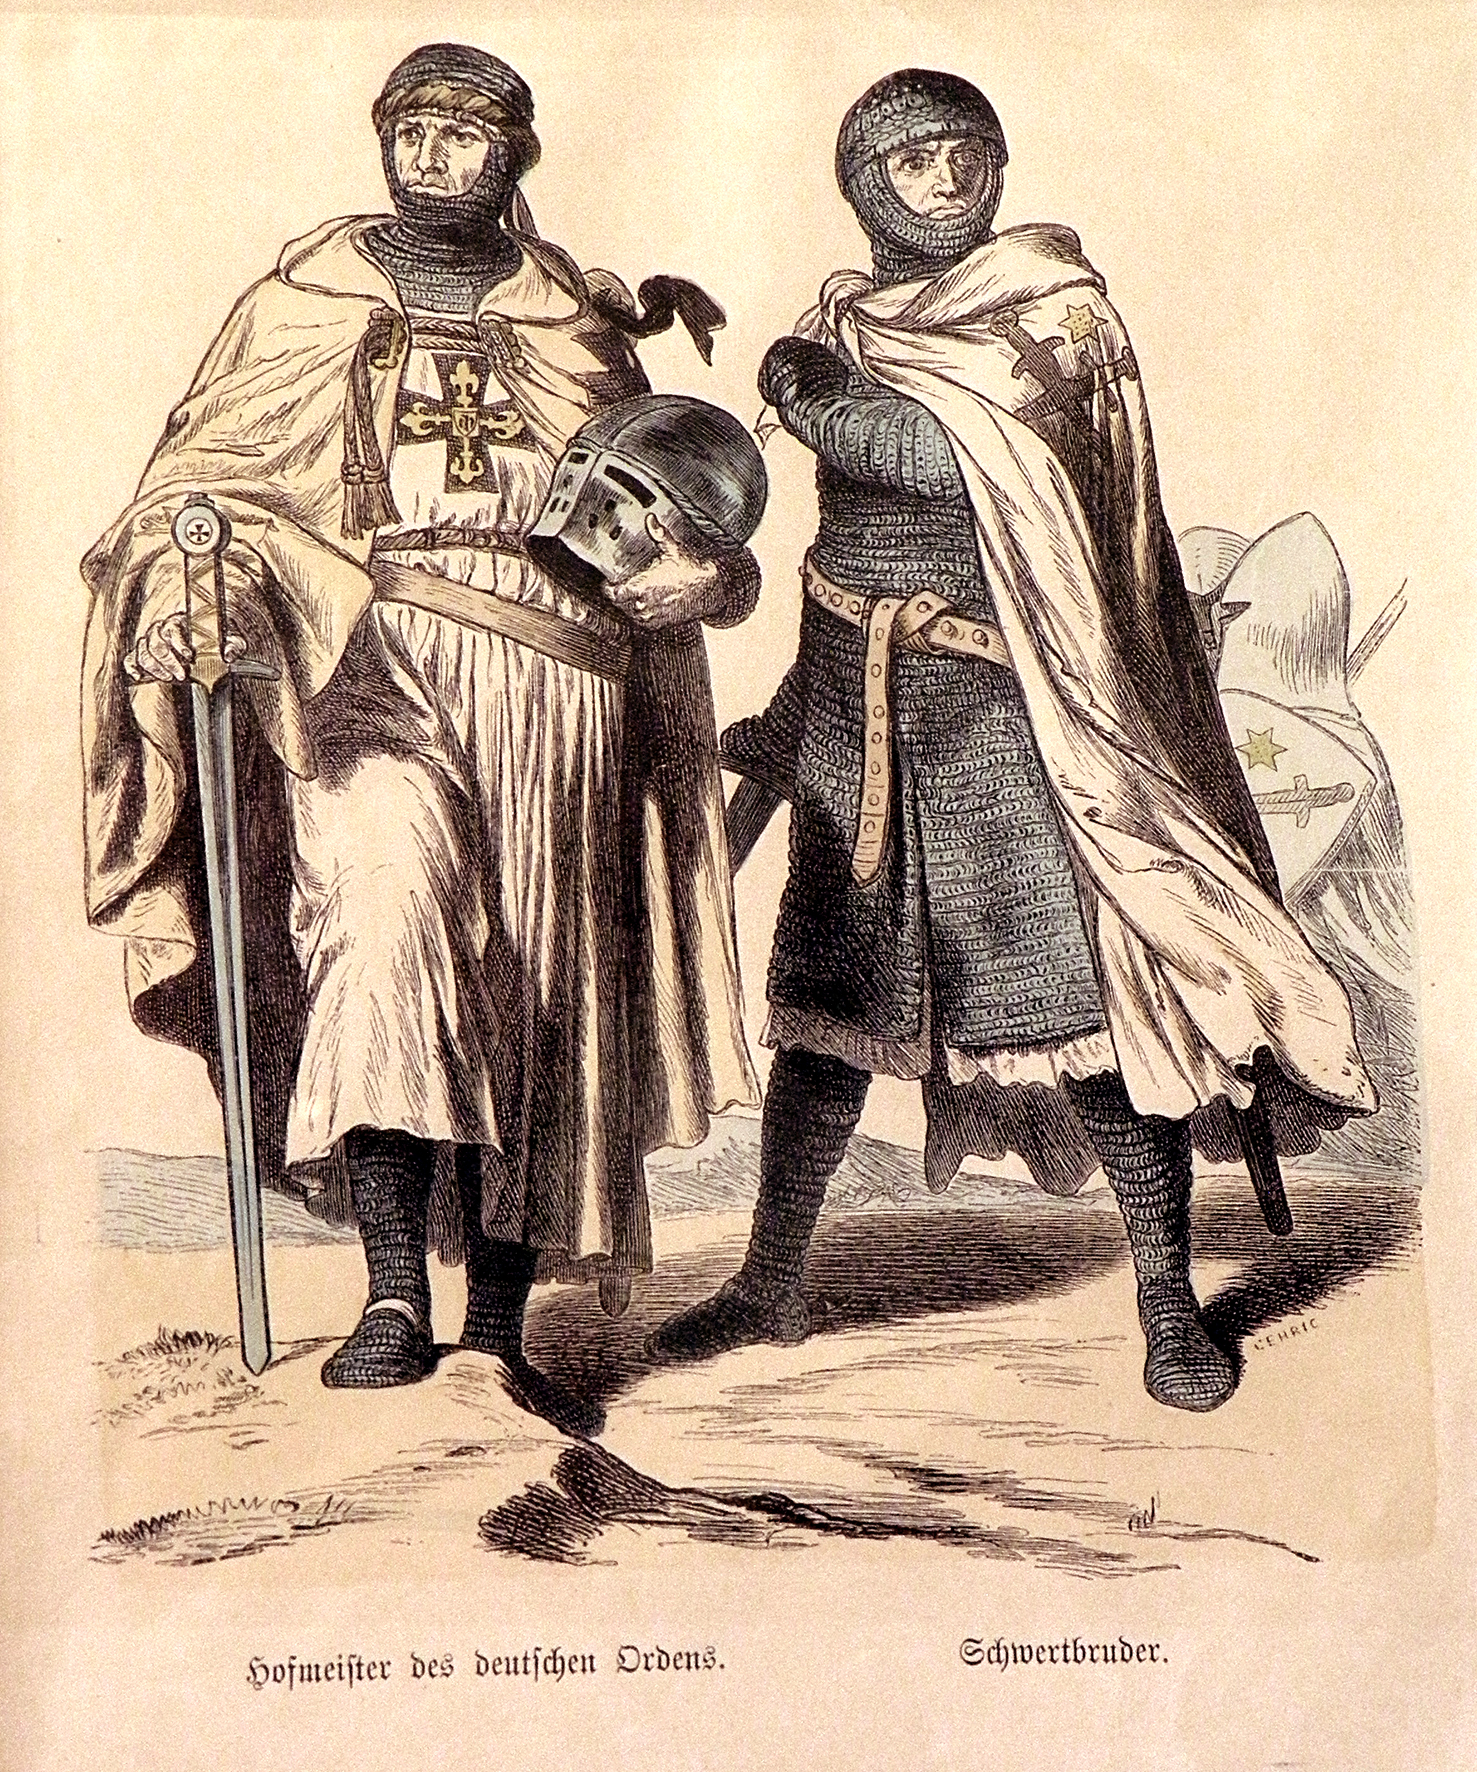 Knights_of_the_Teutonic_order.jpg